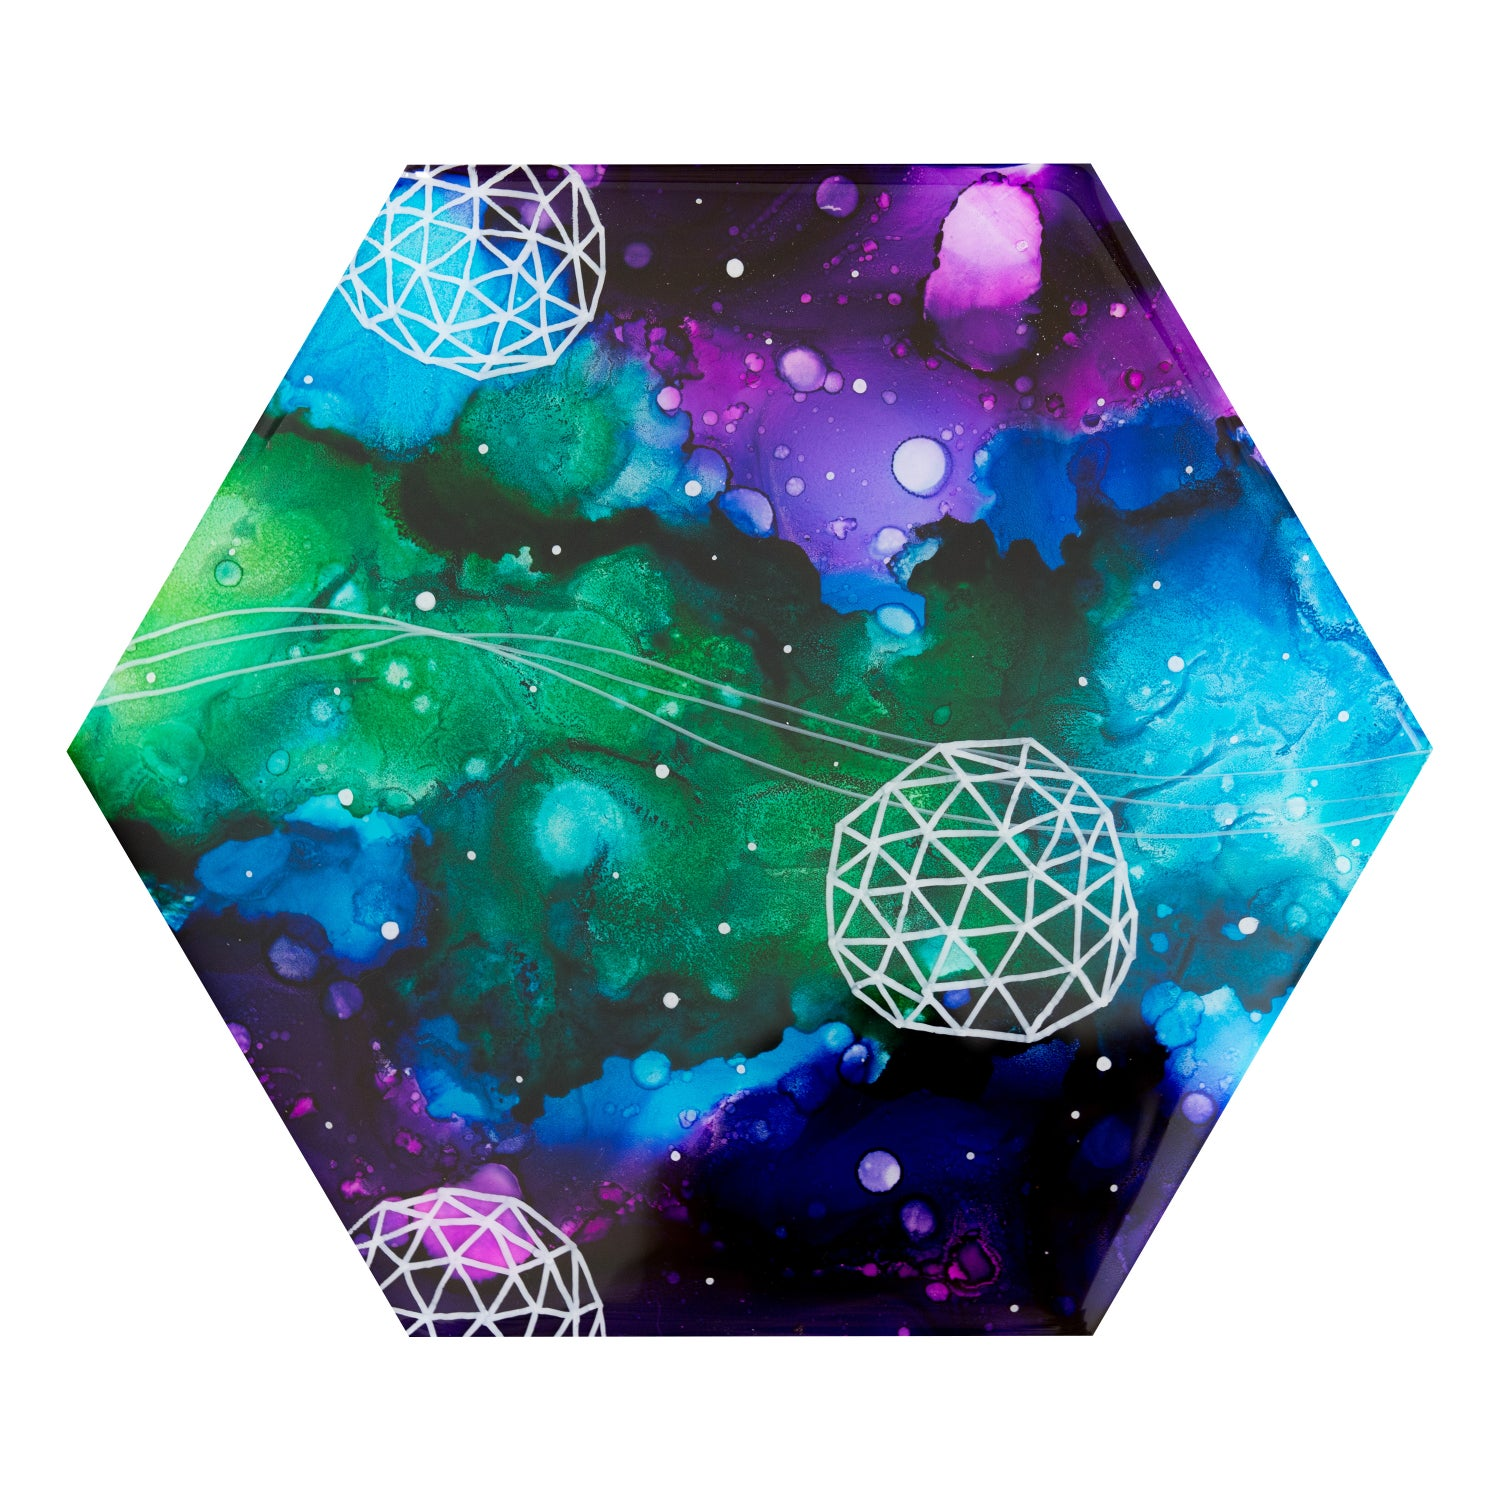 Image of green, blue and purple abstract hexagon painting